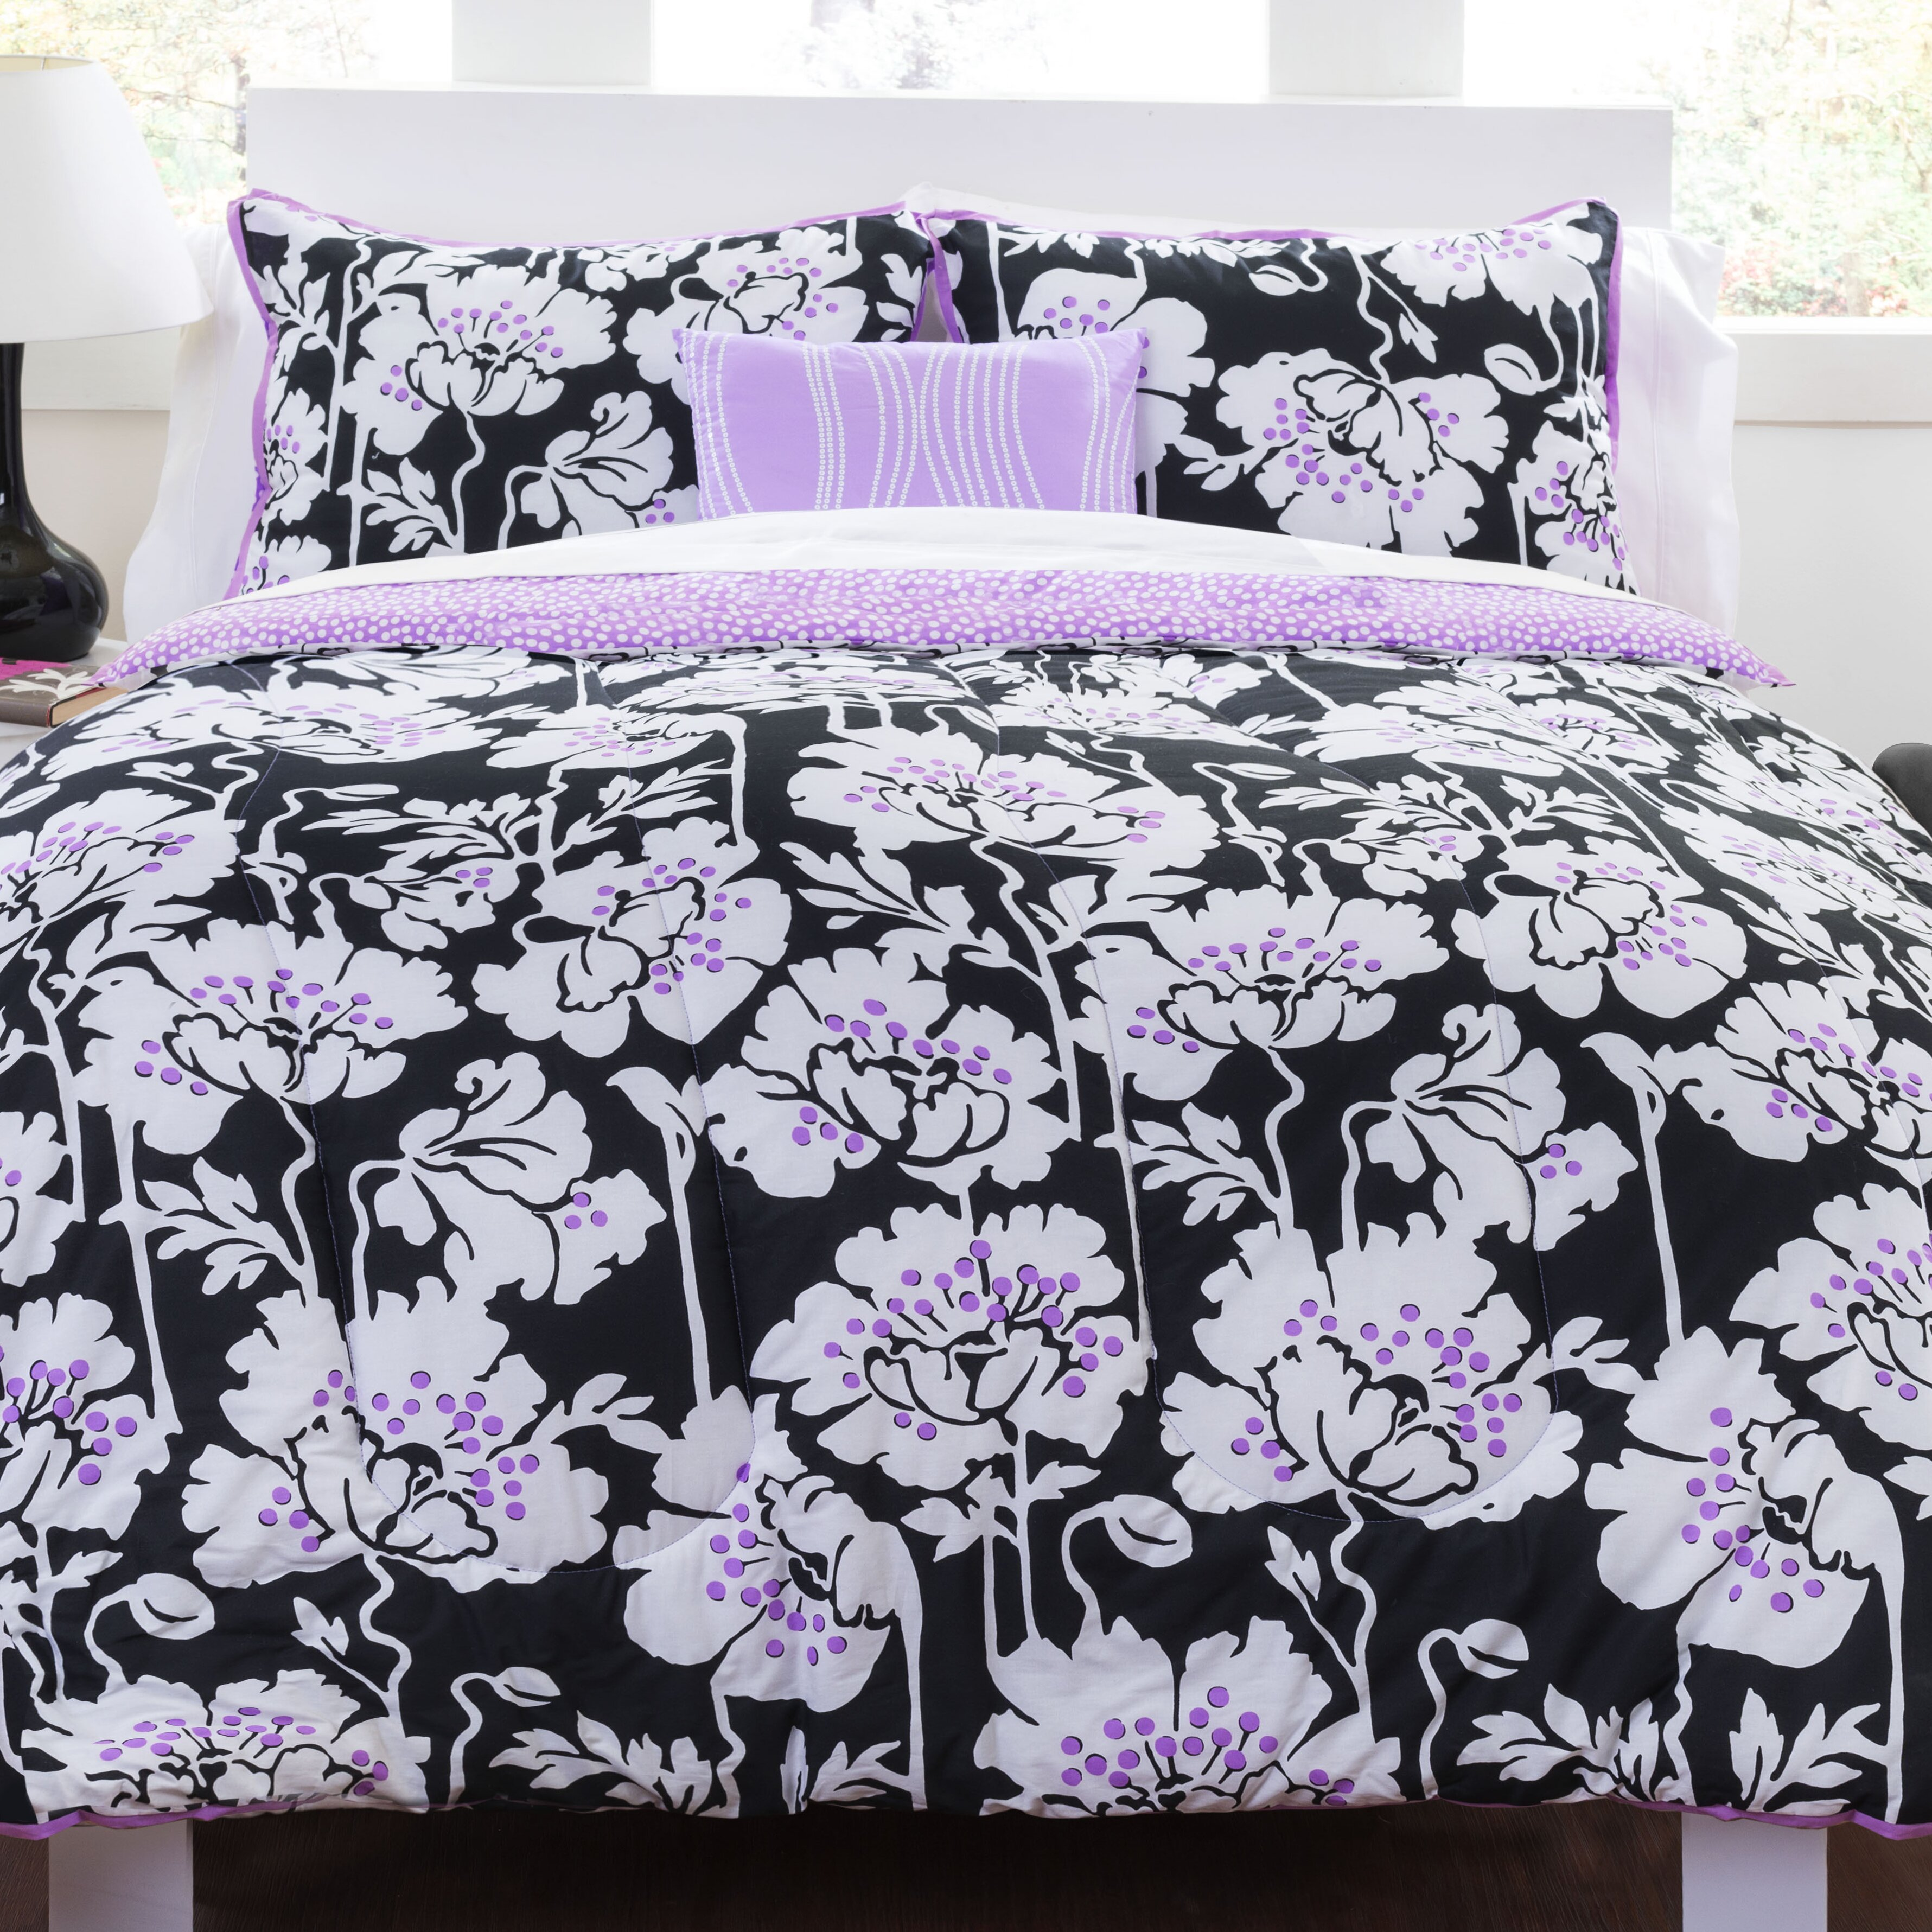 city covers piece printed soccer sets product bedding scenery field vivilinen bed and duvet